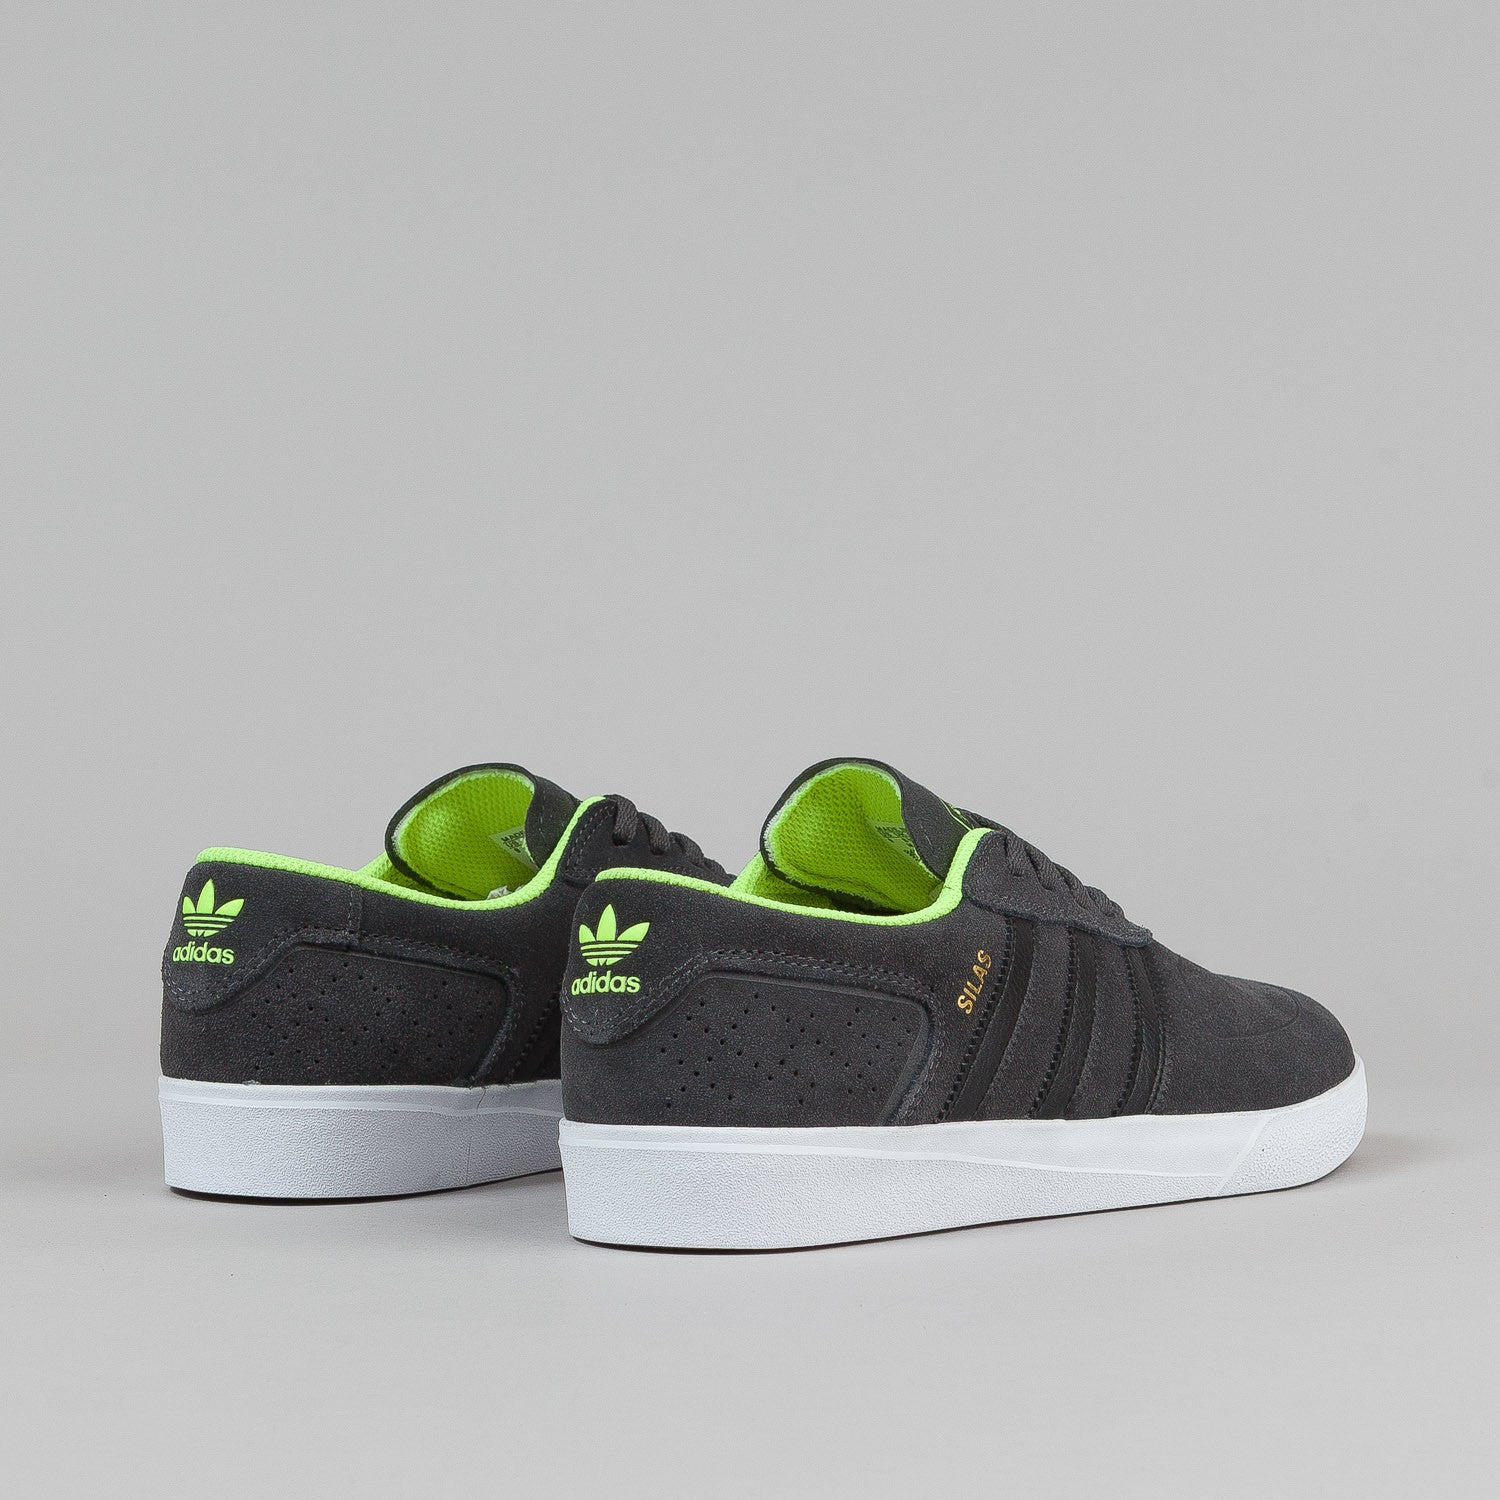 Adidas Silas Vulc ADV Shoes - Solid Grey / Black / Solar Yellow